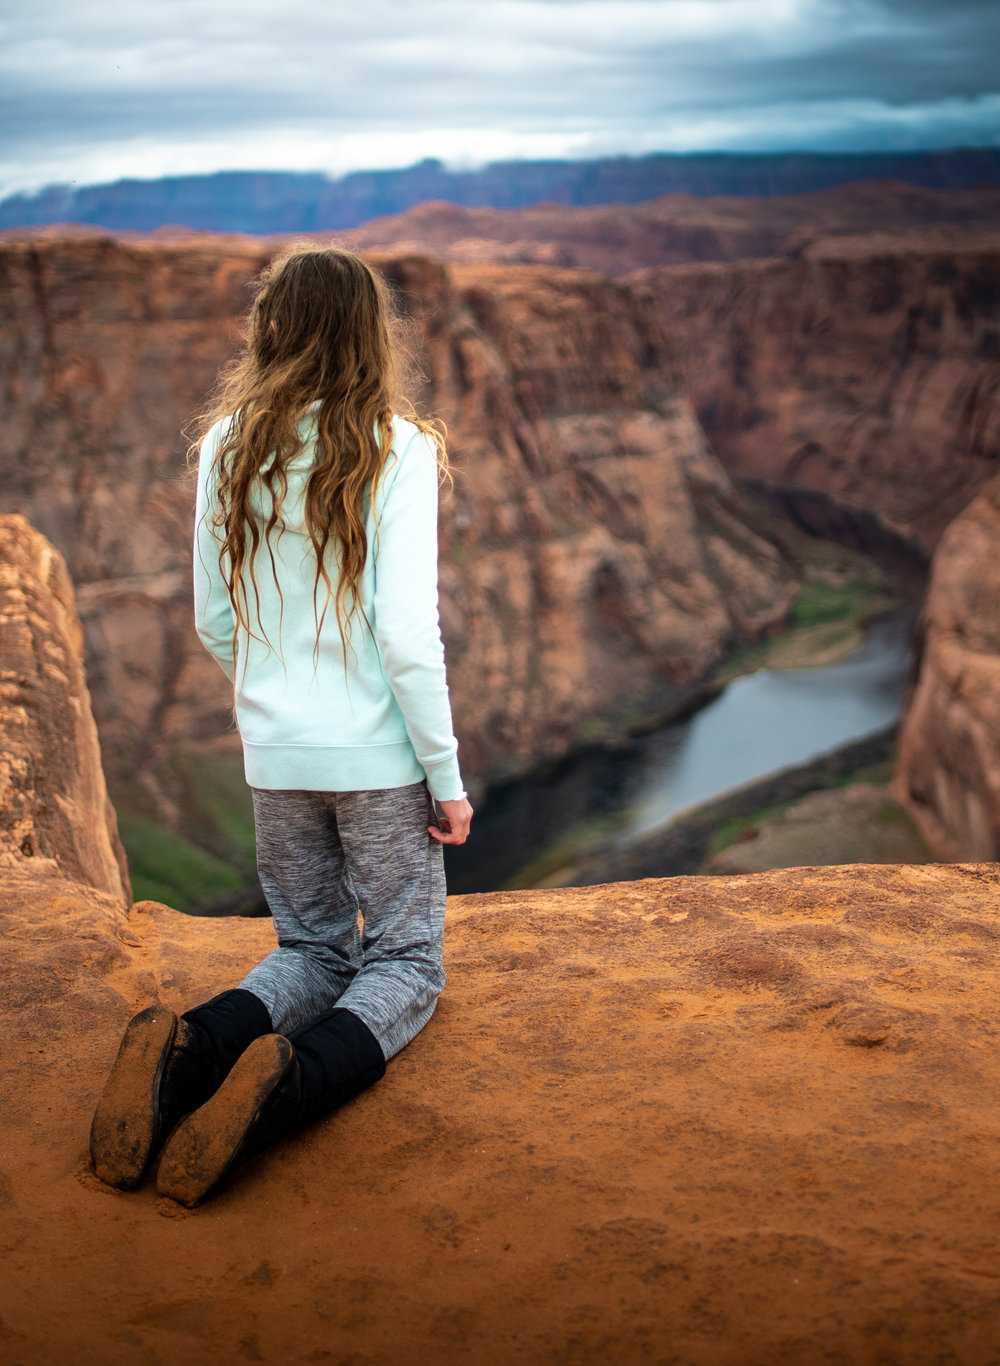 I found this exceptionally interesting. This young girl sat on her knees for 10 minutes. She sat silent, looked up and down the canyon. She was one of the only humans there that I didn't see on a cell phone. I hope she takes something greater away from Horseshoe Bend, and develops a deep application for our wild places.